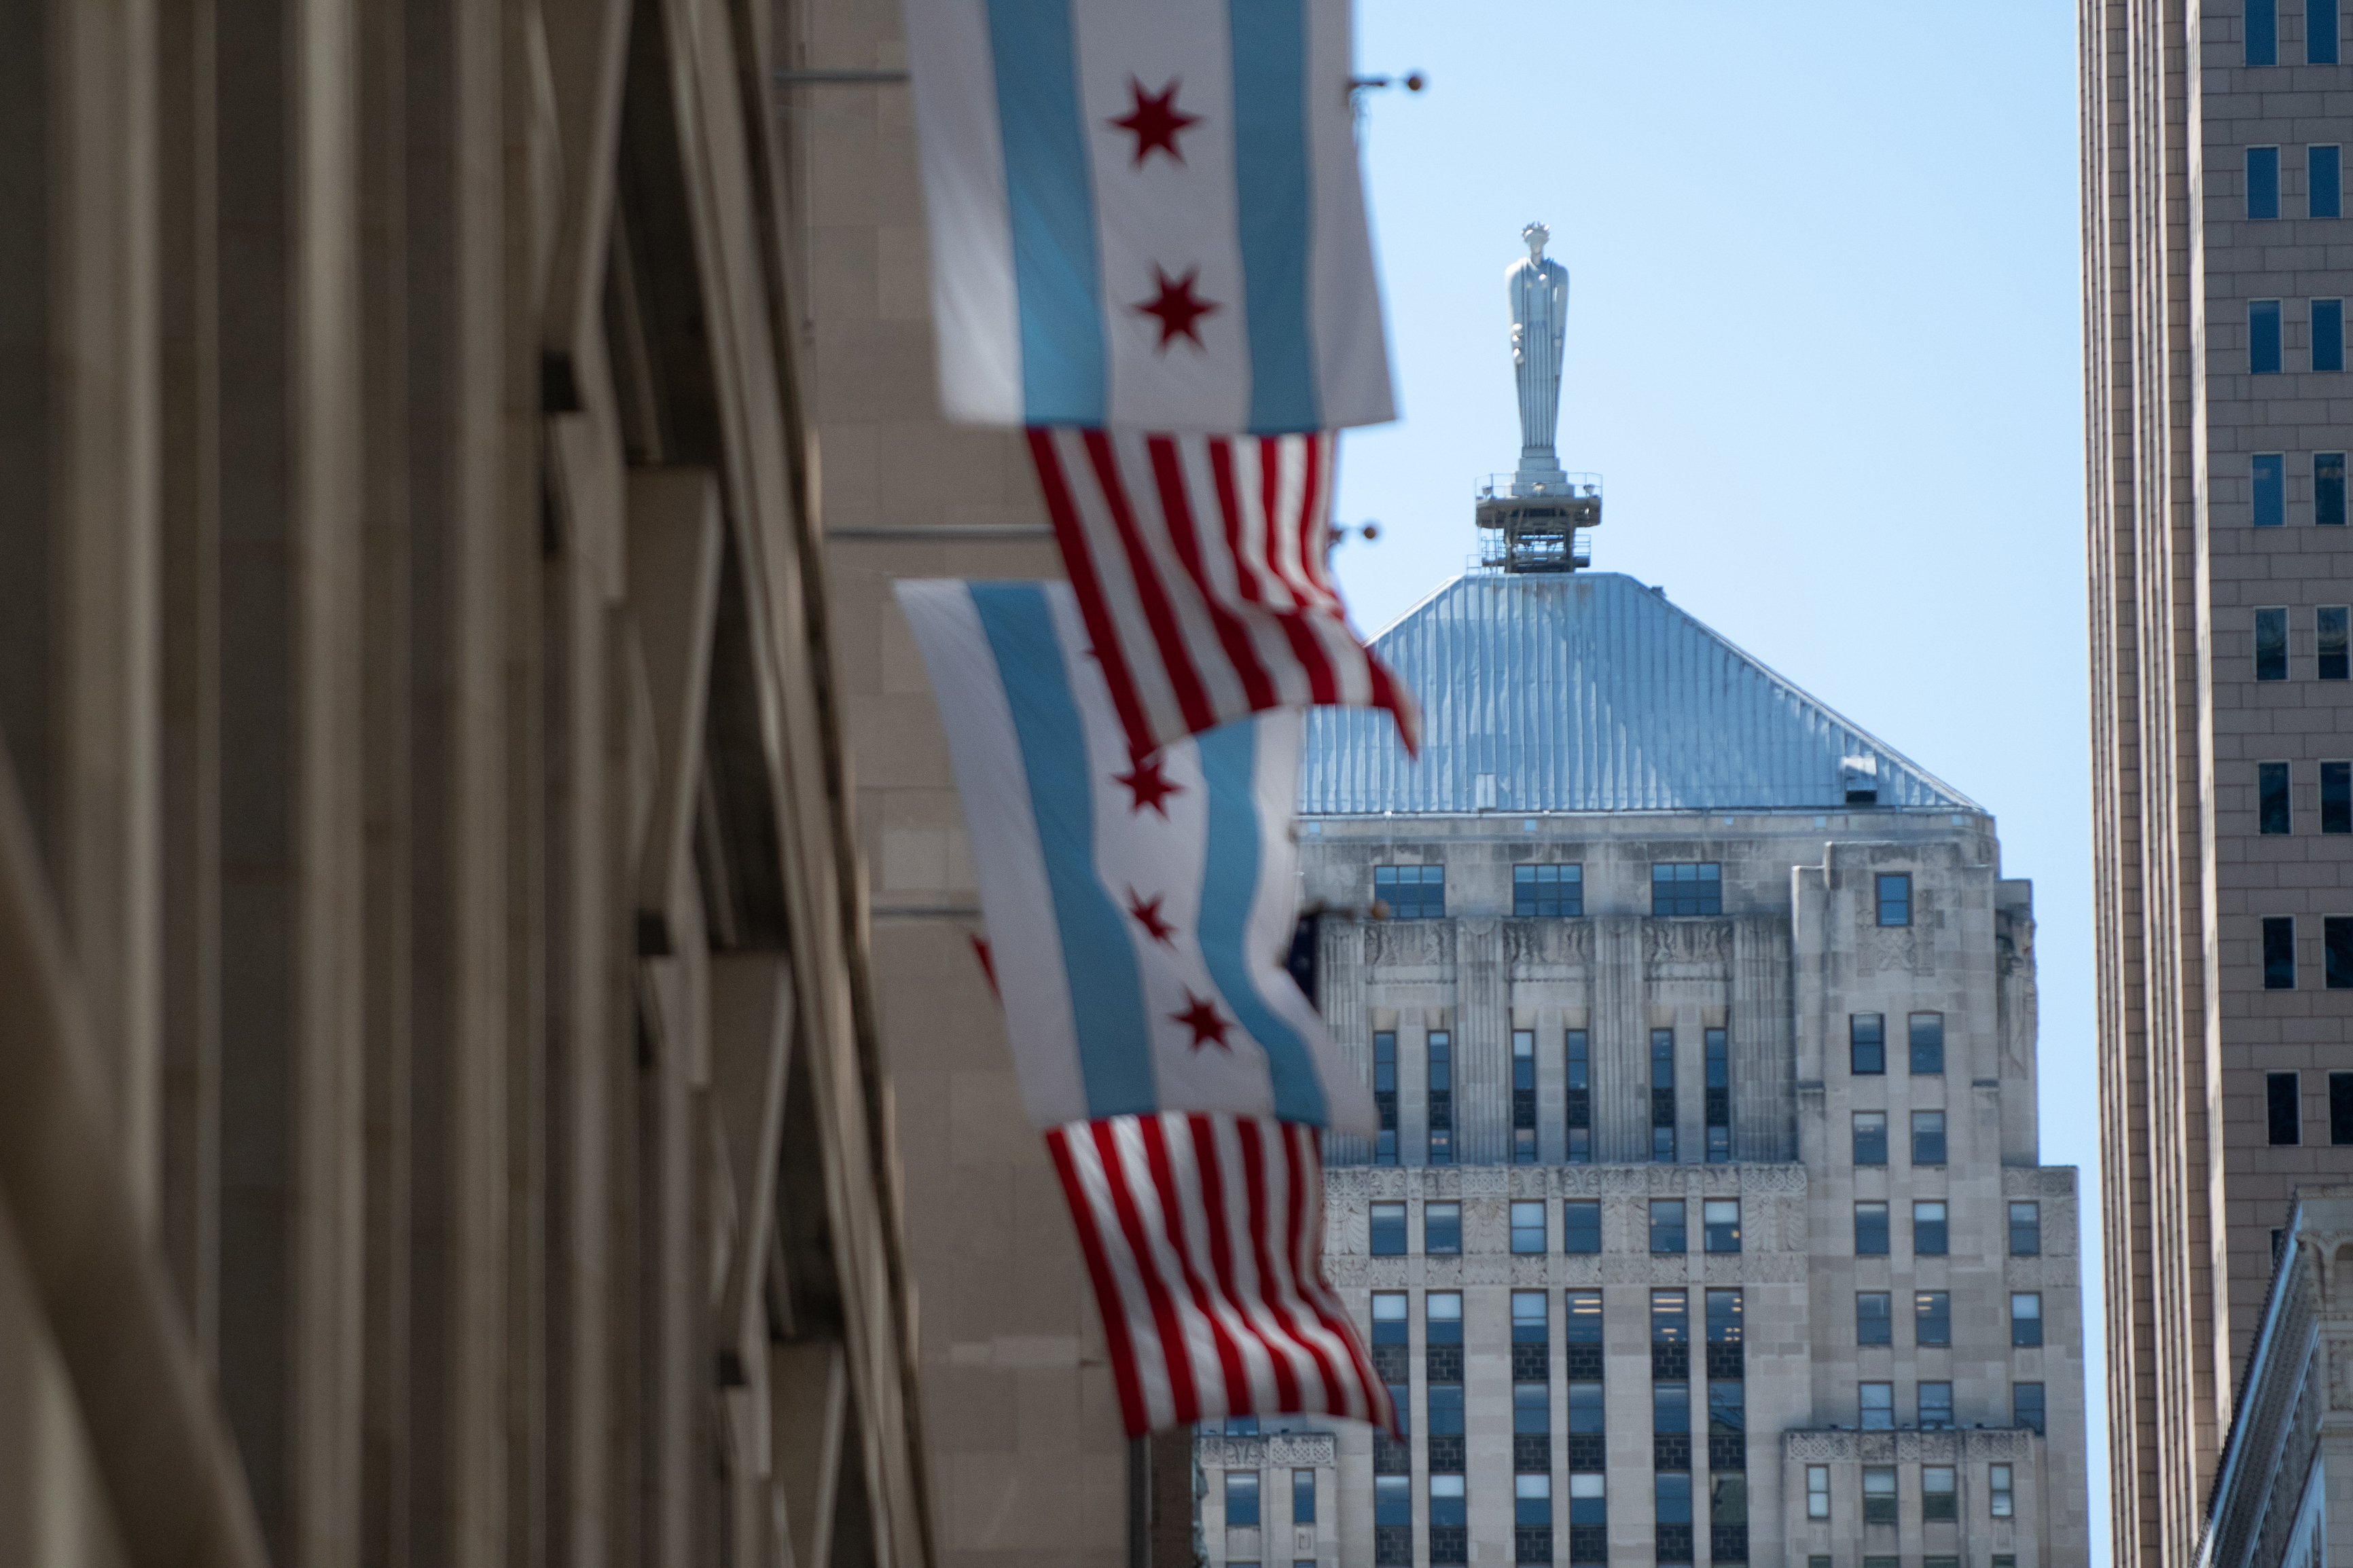 The Chicago and United States of America flags fly outside City Hall with the Chicago Board of Trade building in the background.